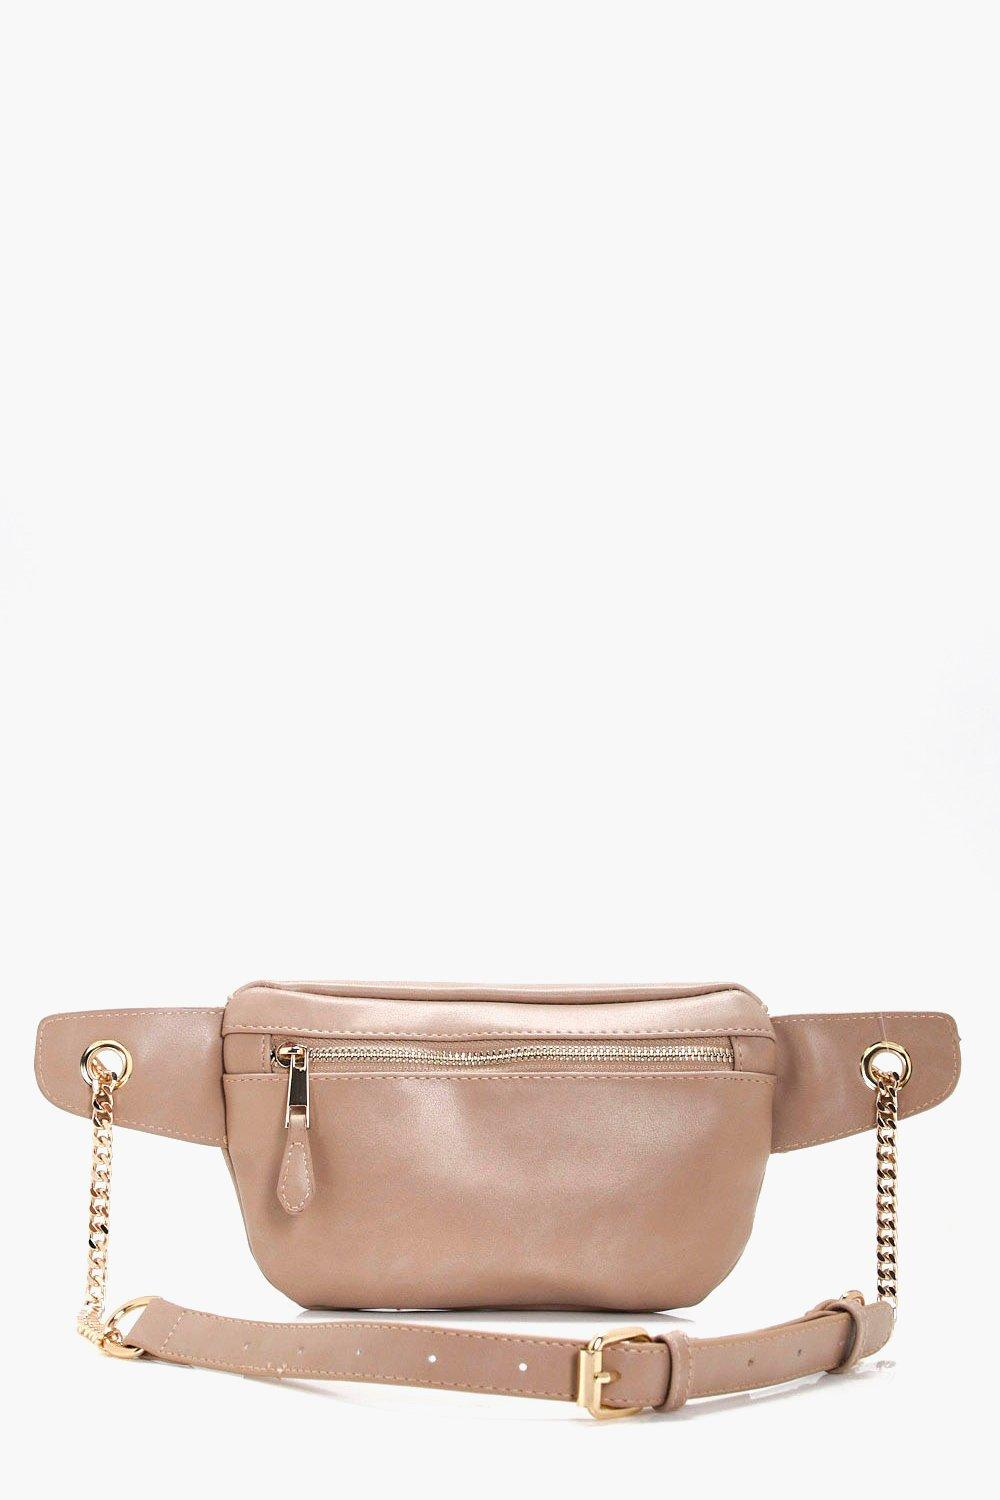 Chain Detail Bumbag - cream - Ellie Chain Detail B